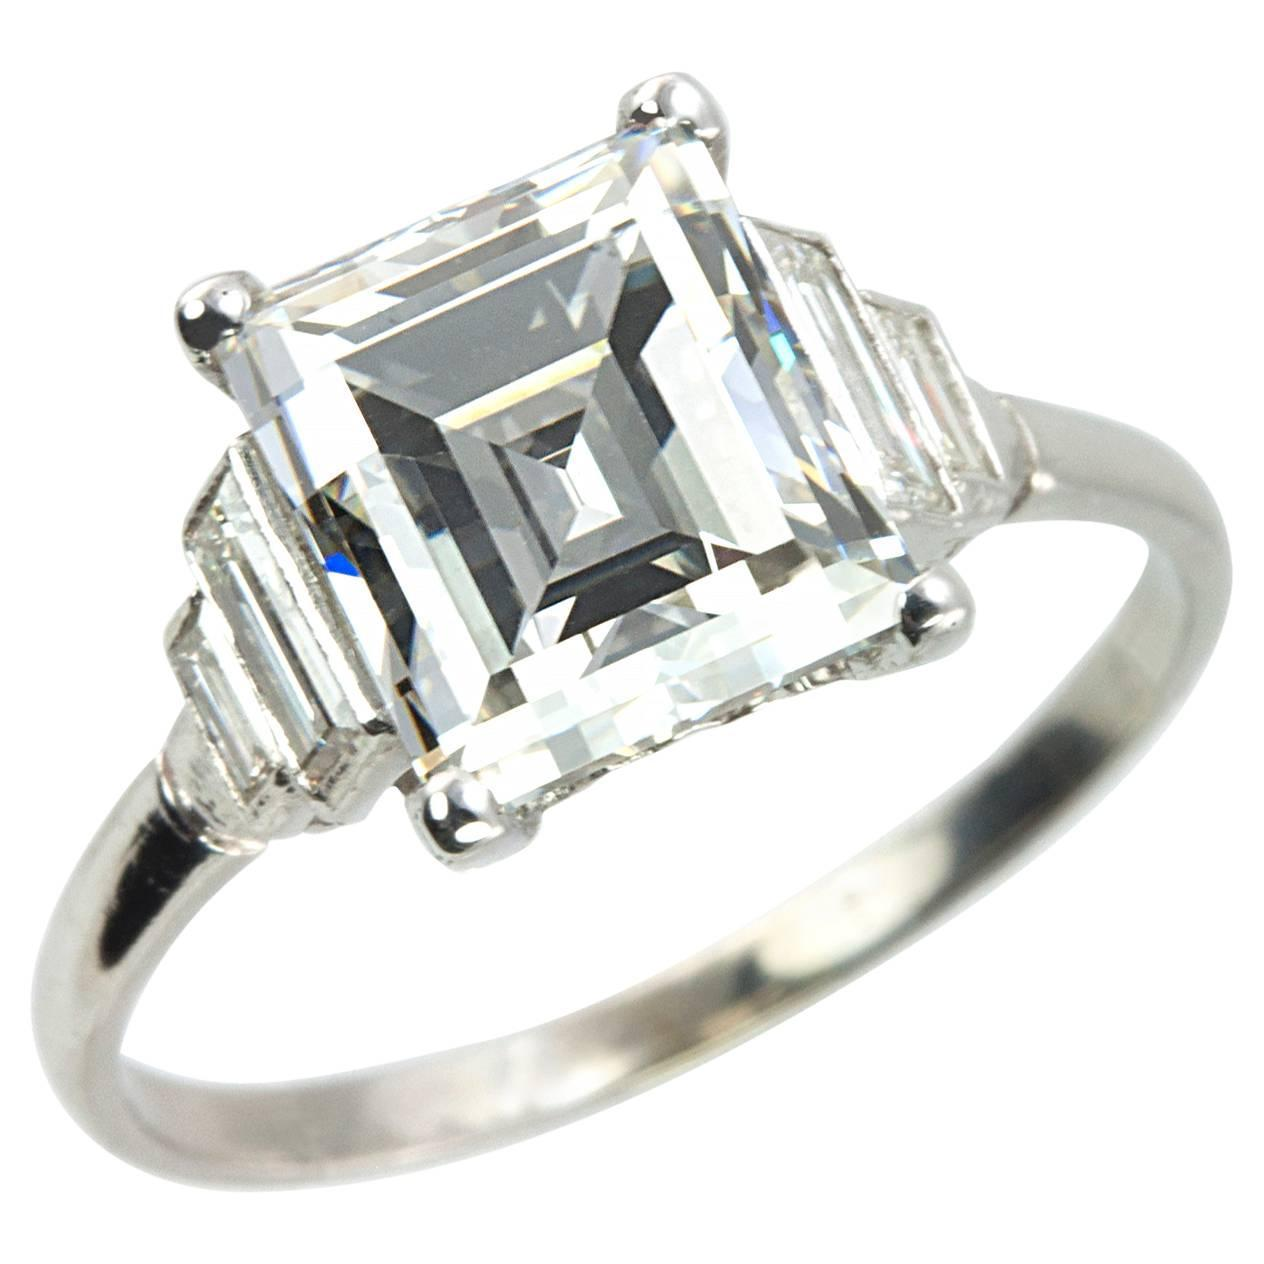 Art Deco 2 90 Carat Emerald Cut Diamond Engagement Ring For Sale at 1stdibs